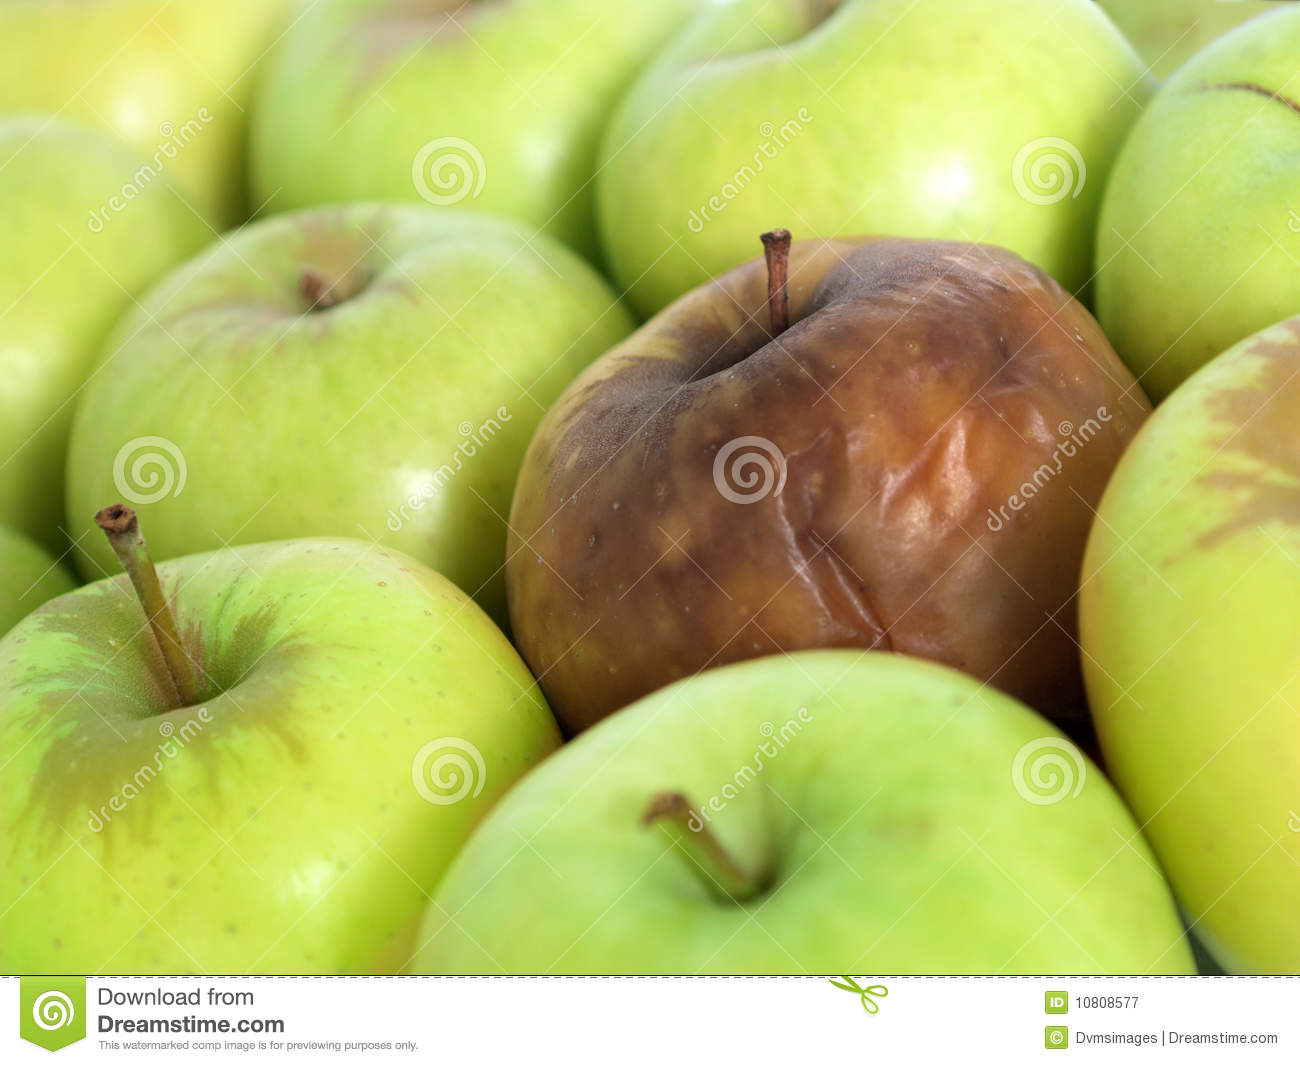 Bad Apple In The Bunch Royalty Free Stock Photography ...